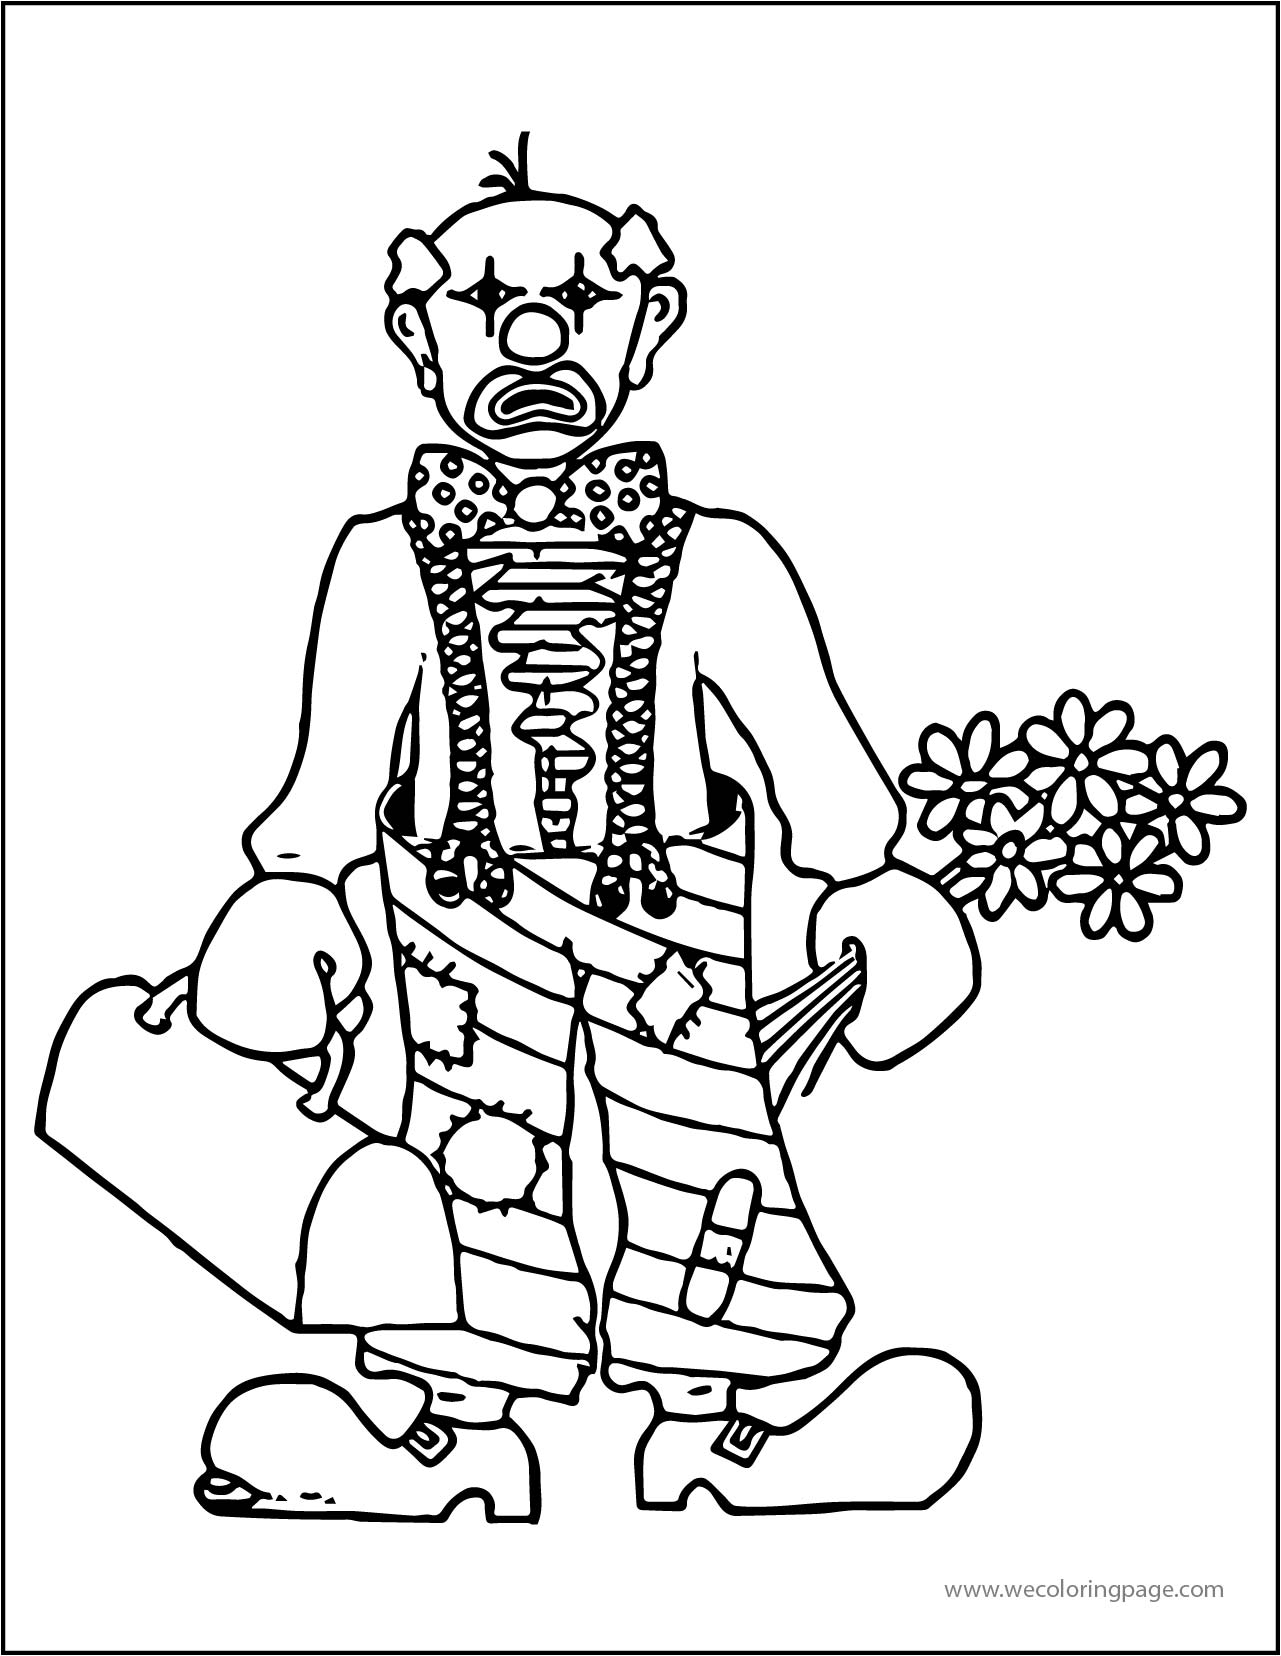 Clown Wecoloringpage A4 03 Coloring Page